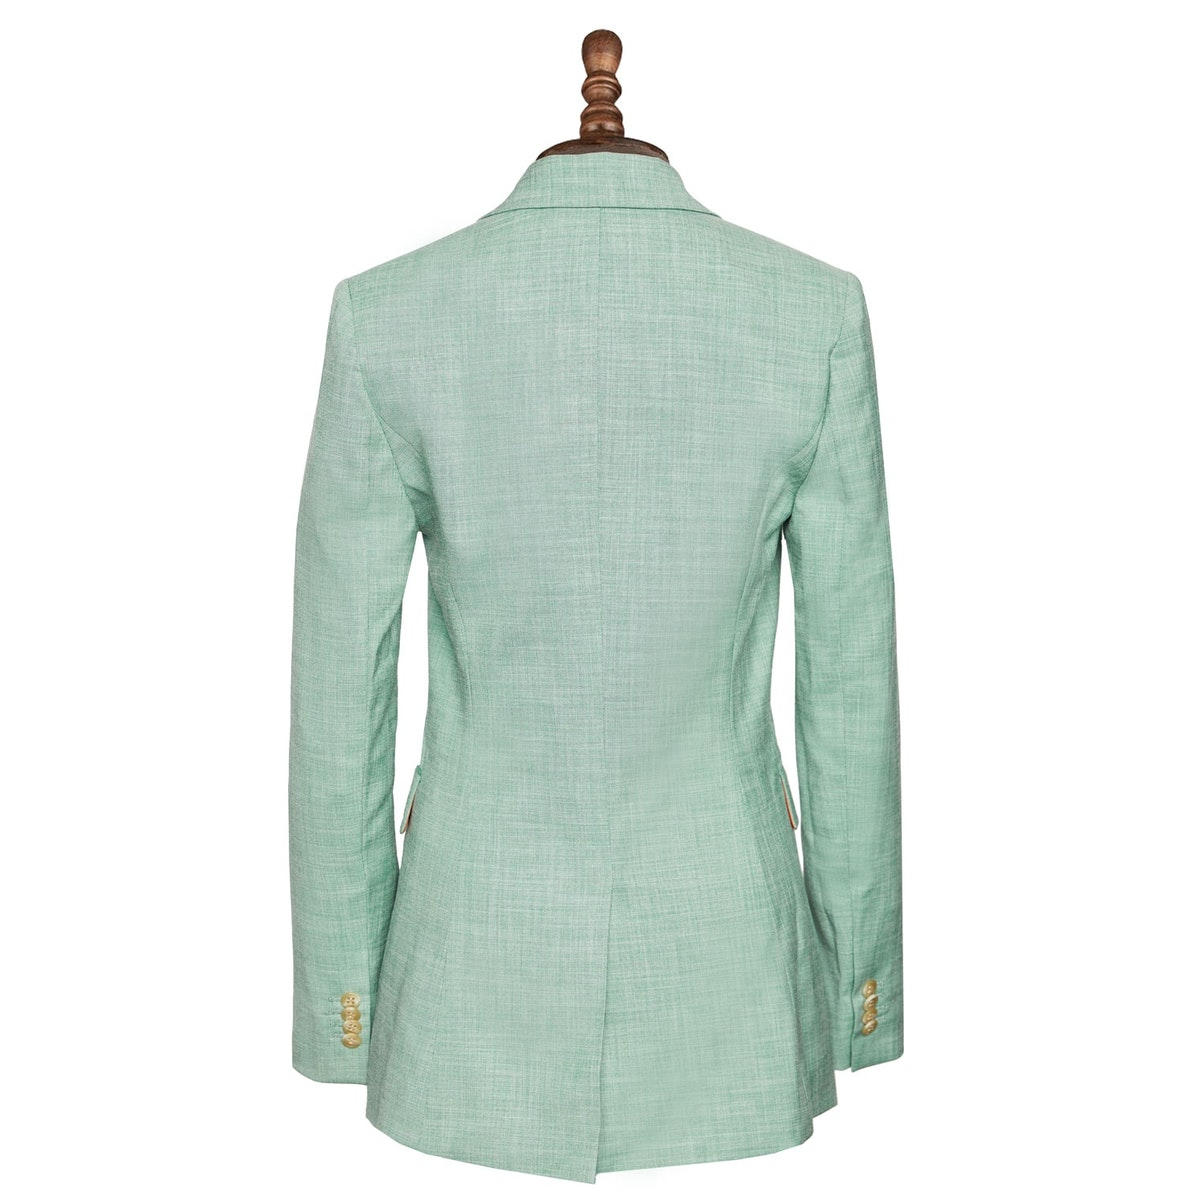 InStitchu Collection The Greenfield Green Sharkskin Jacket